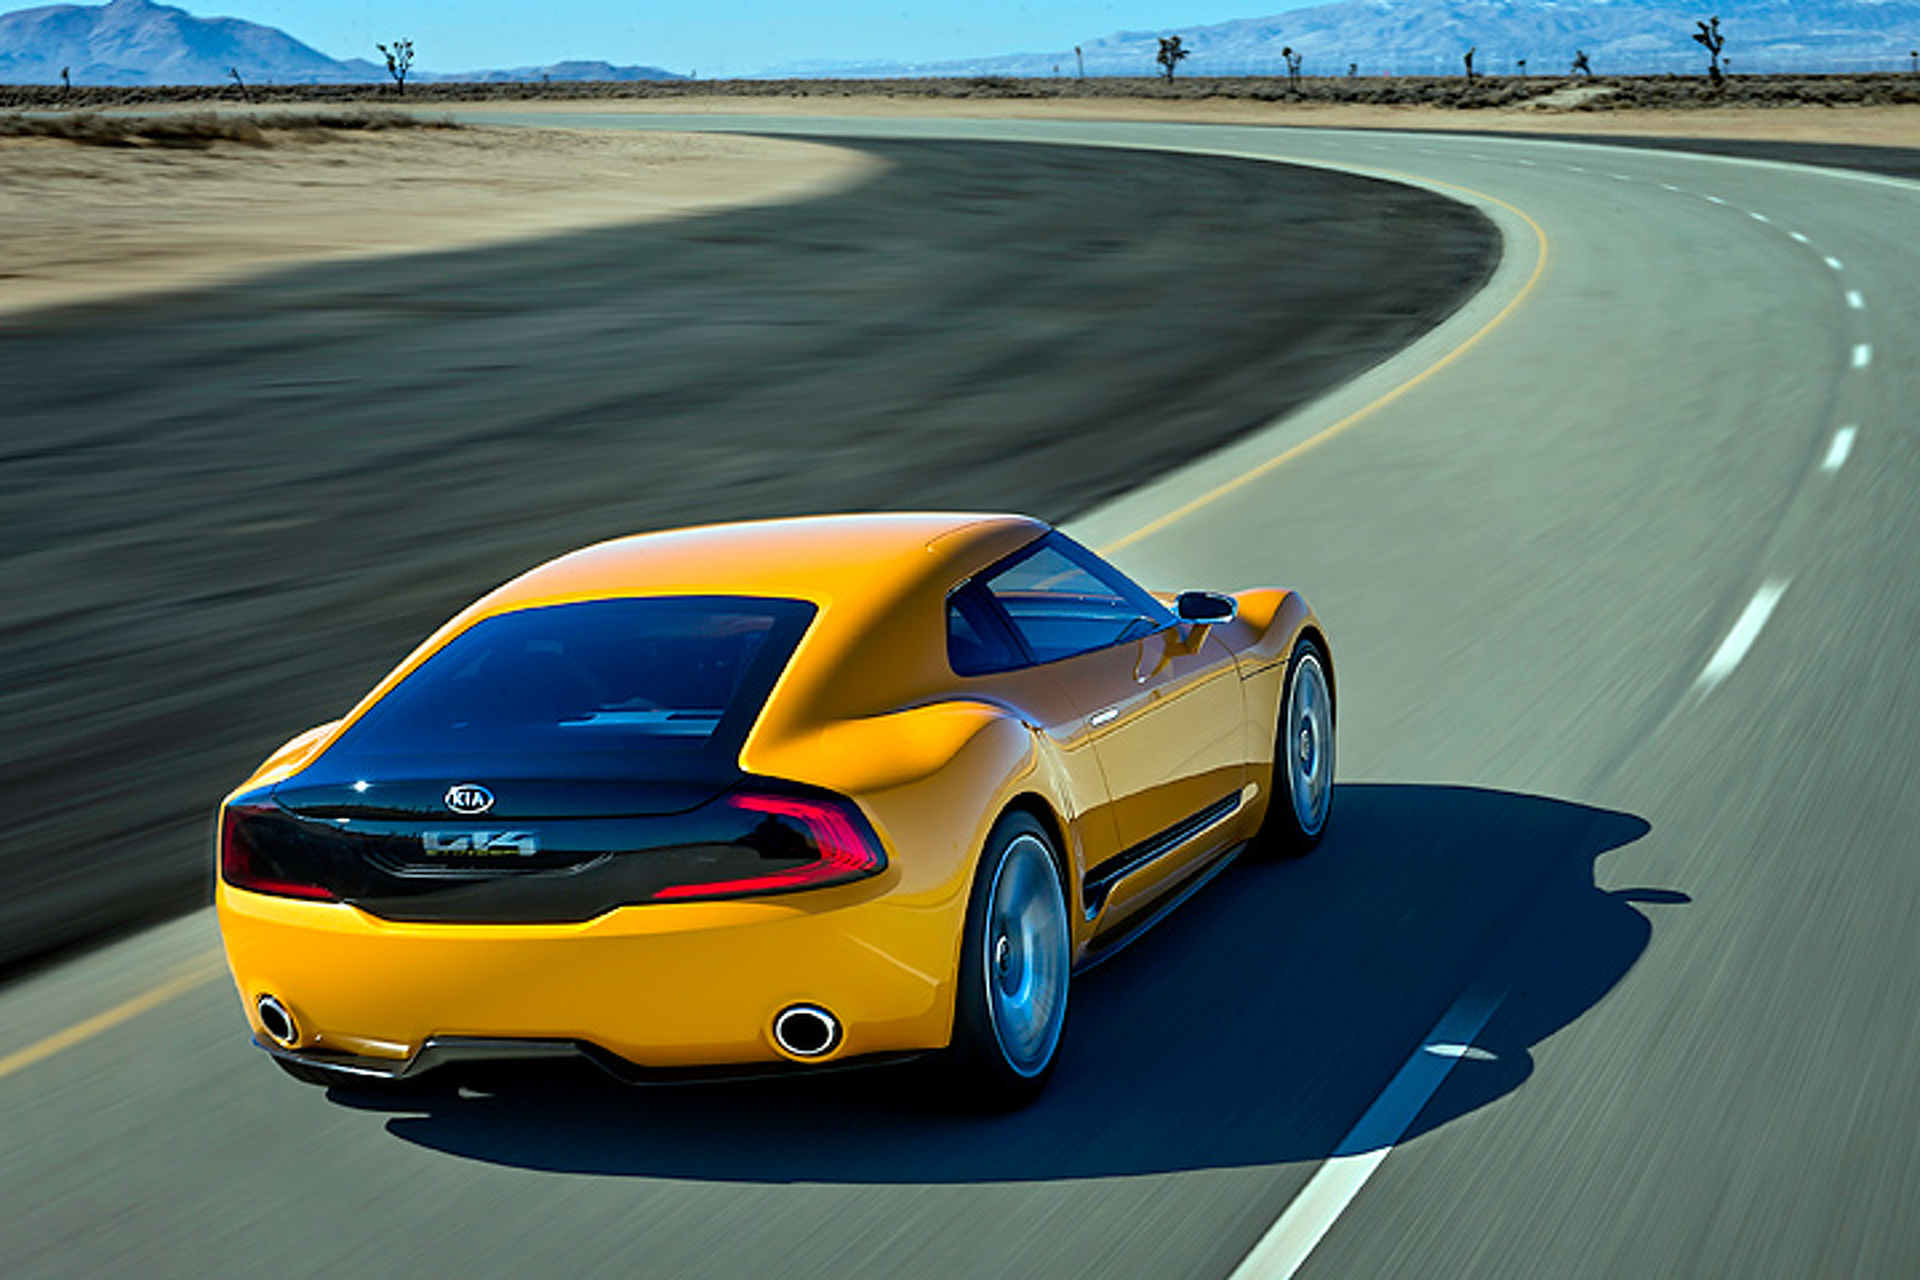 integral auto option of lines in quarters tight stinger two sedan fluid sea show sports juicier hood elegant the is racy has car to its rear a swoop that long practical kia detroit are physique production engines and sizzles cars